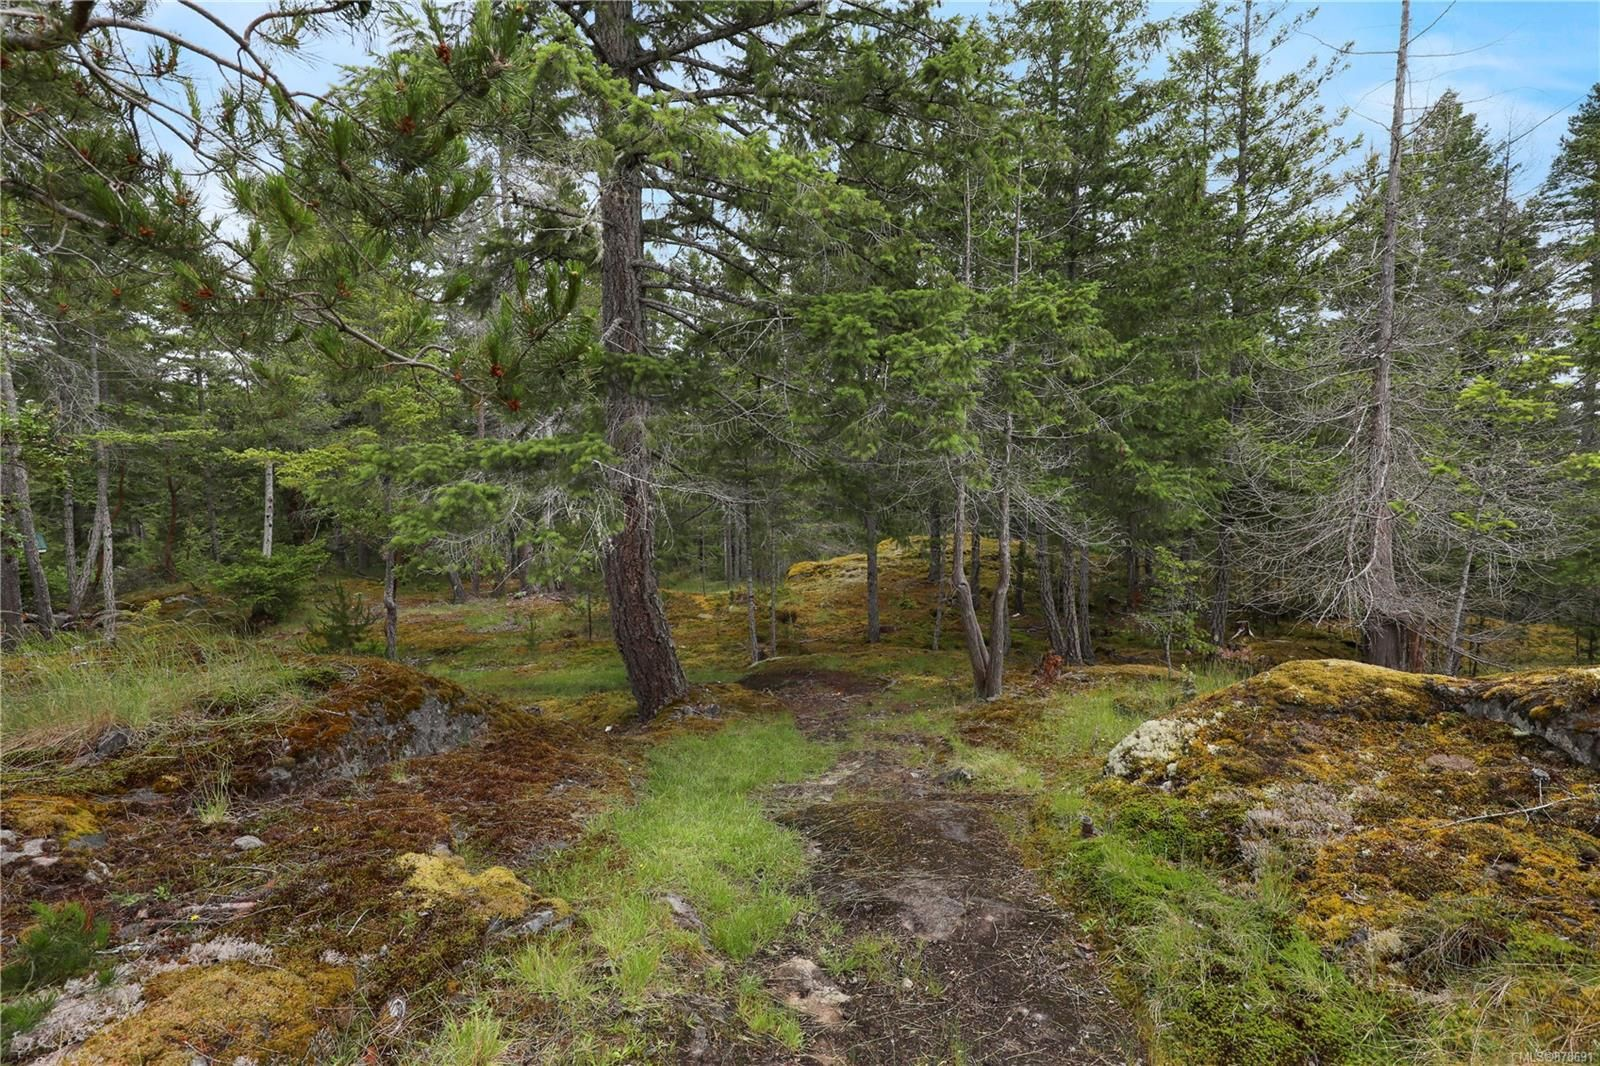 Photo 34: Photos: 979 Thunder Rd in : Isl Cortes Island House for sale (Islands)  : MLS®# 878691